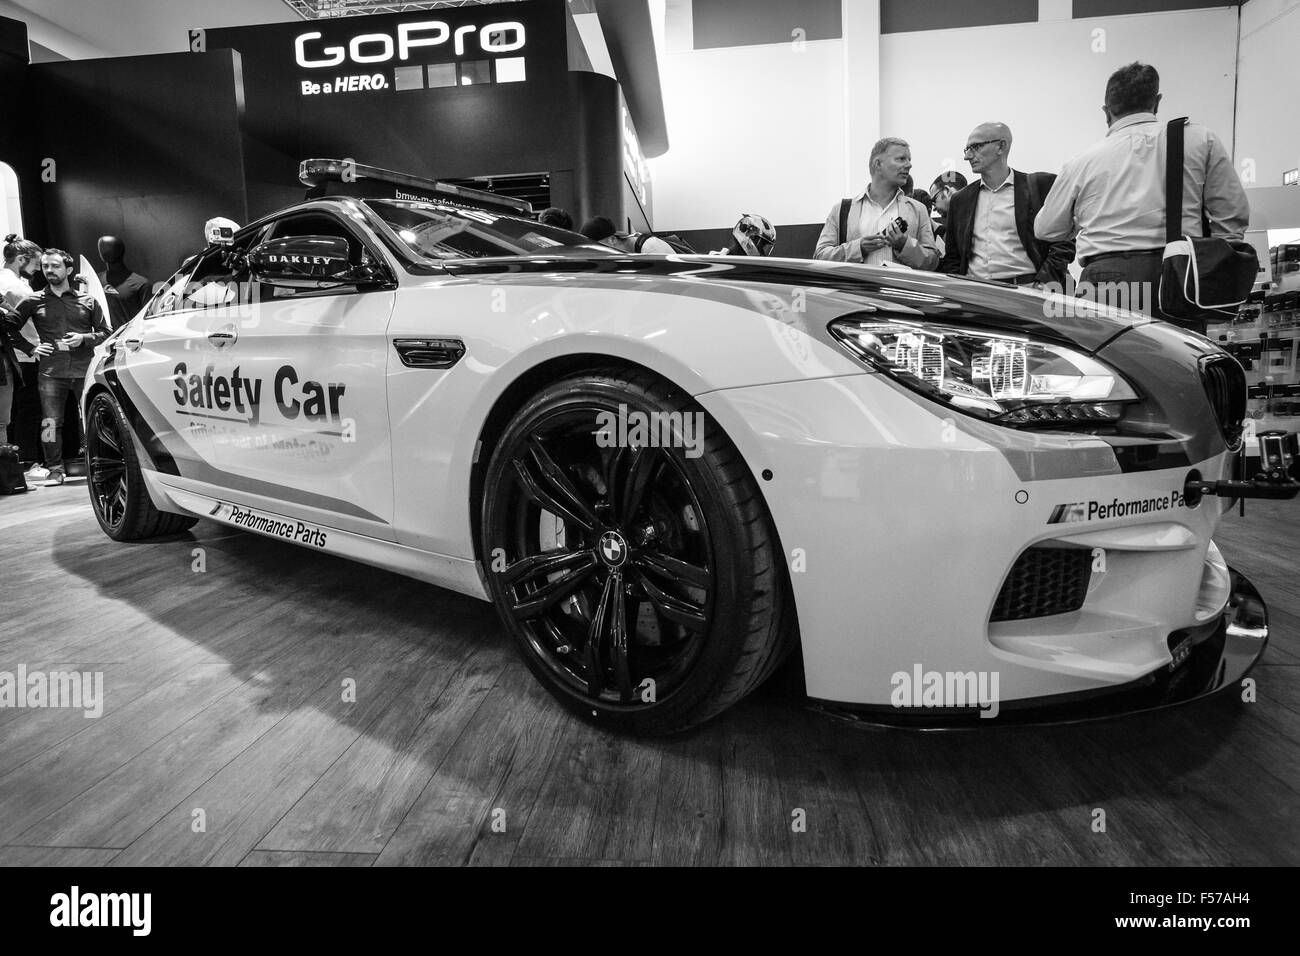 Stand By Gopro Safety Car Bmw M4 Coupe Dtm Black And White